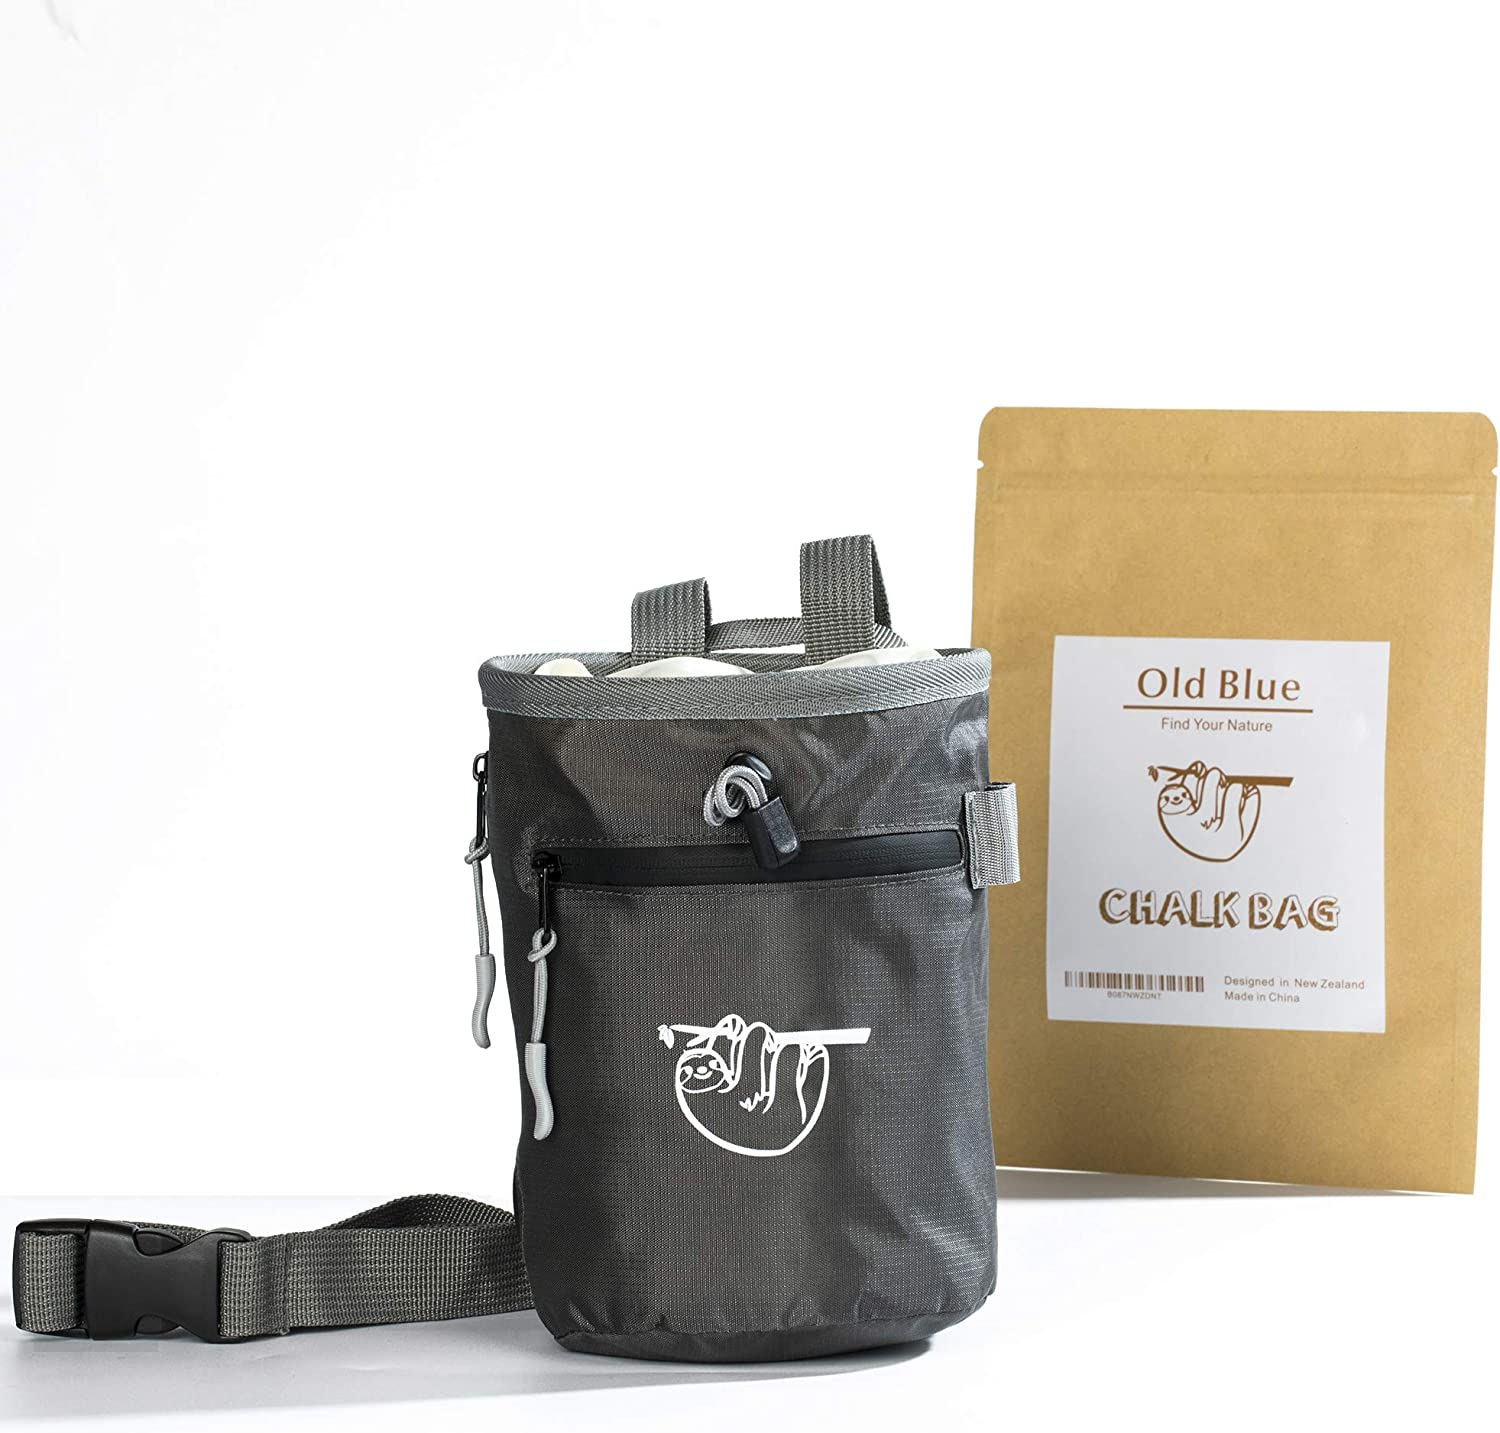 Old Blue Chalk Bag Crossfit with 2 Large Zipper Storage Pockets Perfect Gymnastics Gear Equipment and Gift Set Refillable Gym Chalk Pouch Bucket for Rock Climbing and Weight Lifting